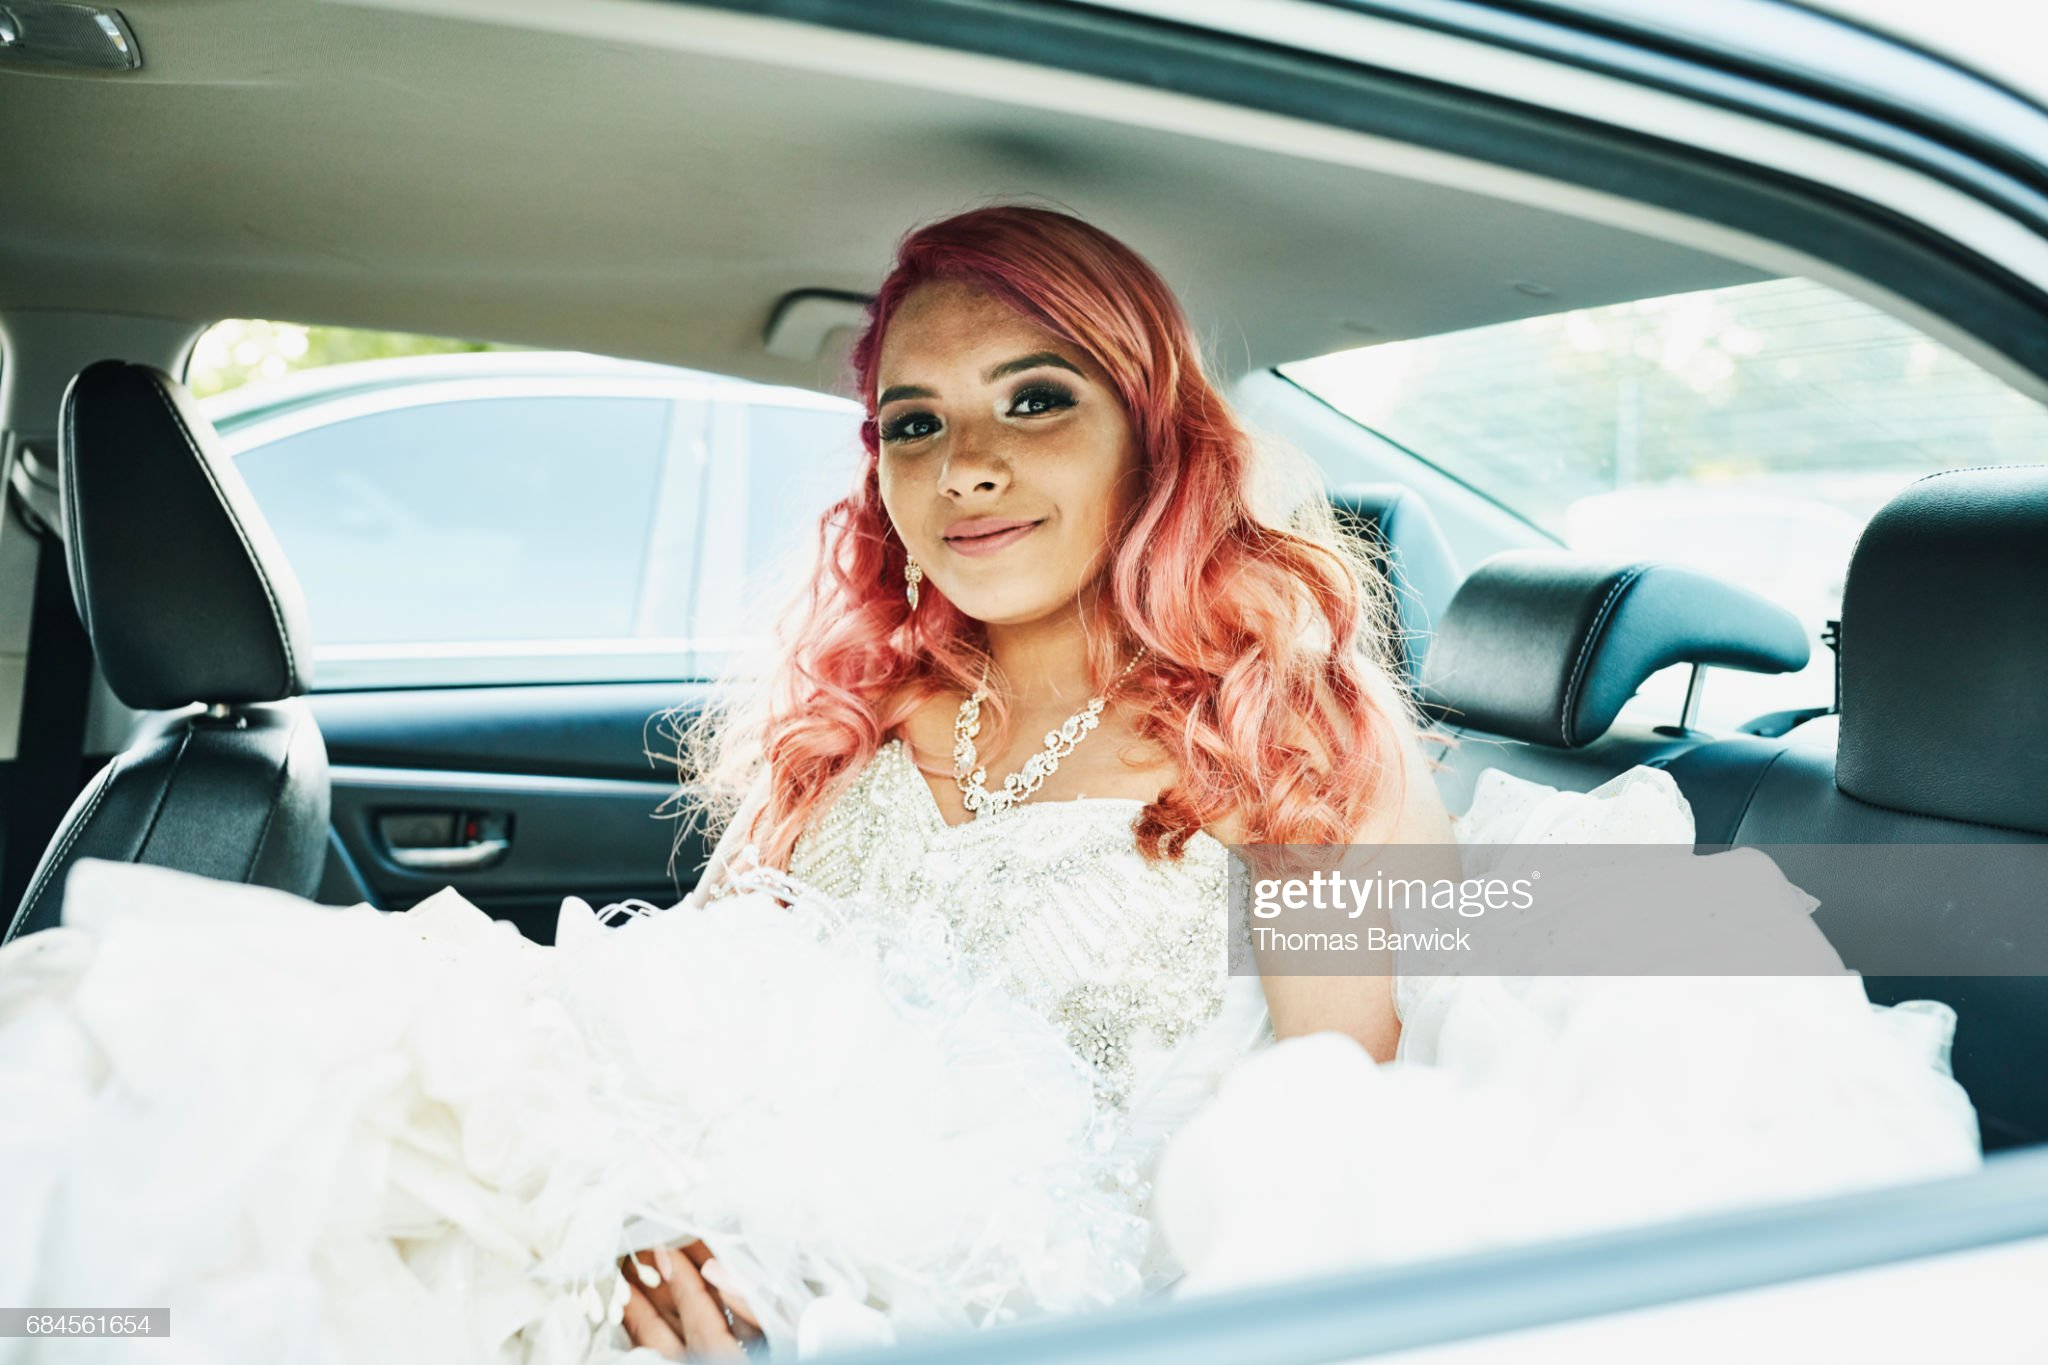 Smiling young woman in quinceanera gown sitting in back seat of car : Stock Photo